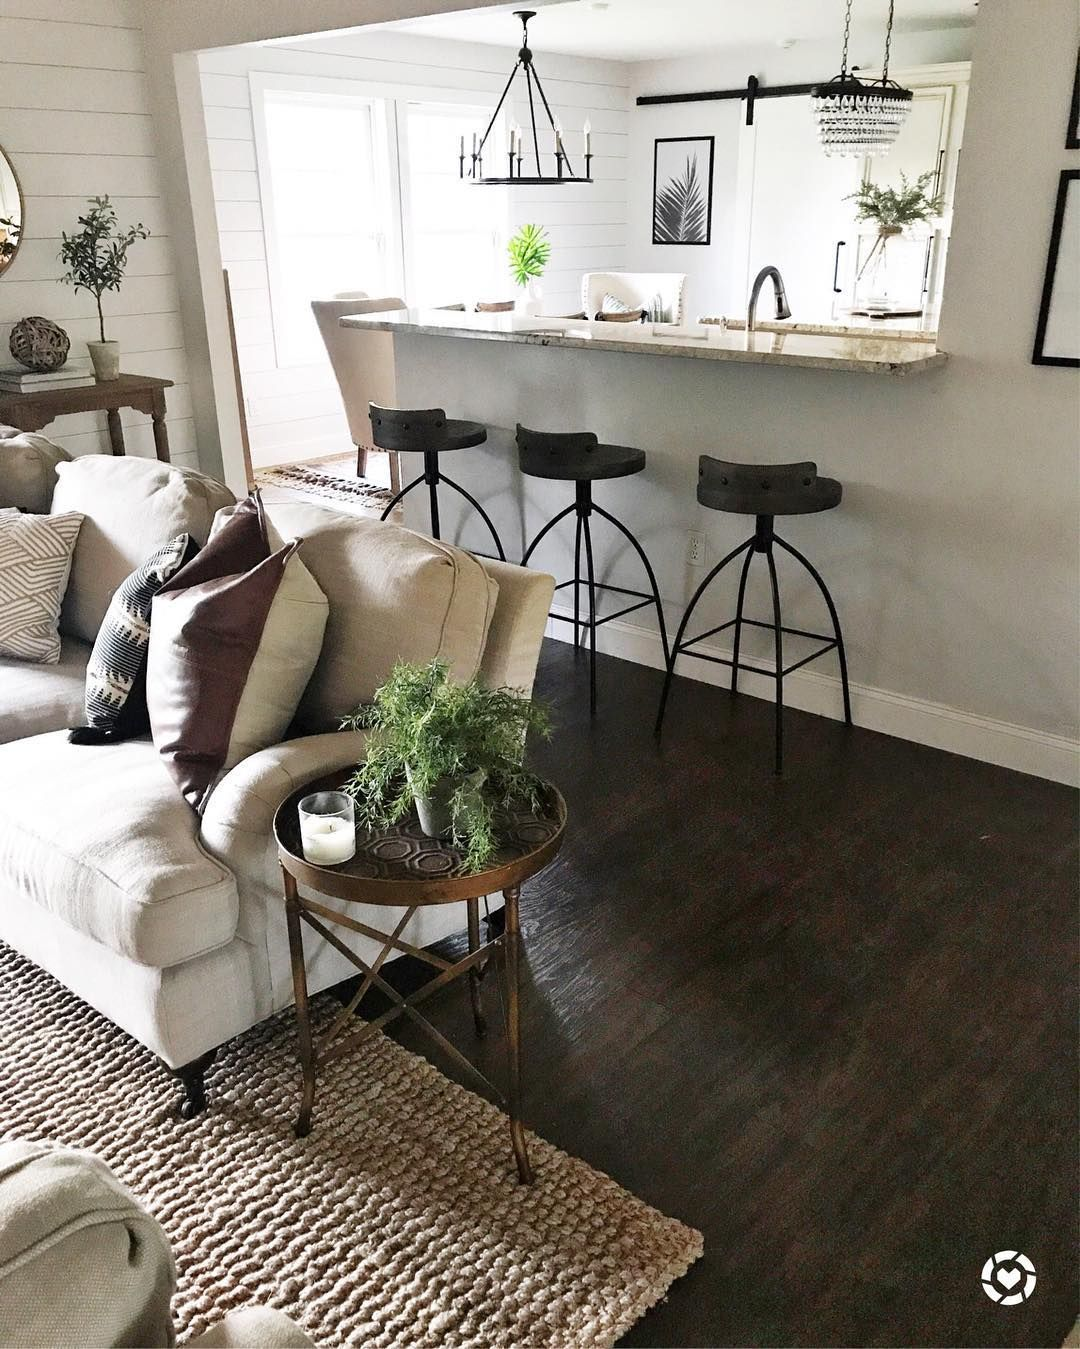 Dark Wood Floors Ideas Designing Your Home Old Bedroom Inkitchen Livingroom Mod Dark Floor Living Room Living Room Wood Floor Dark Wood Floors Living Room